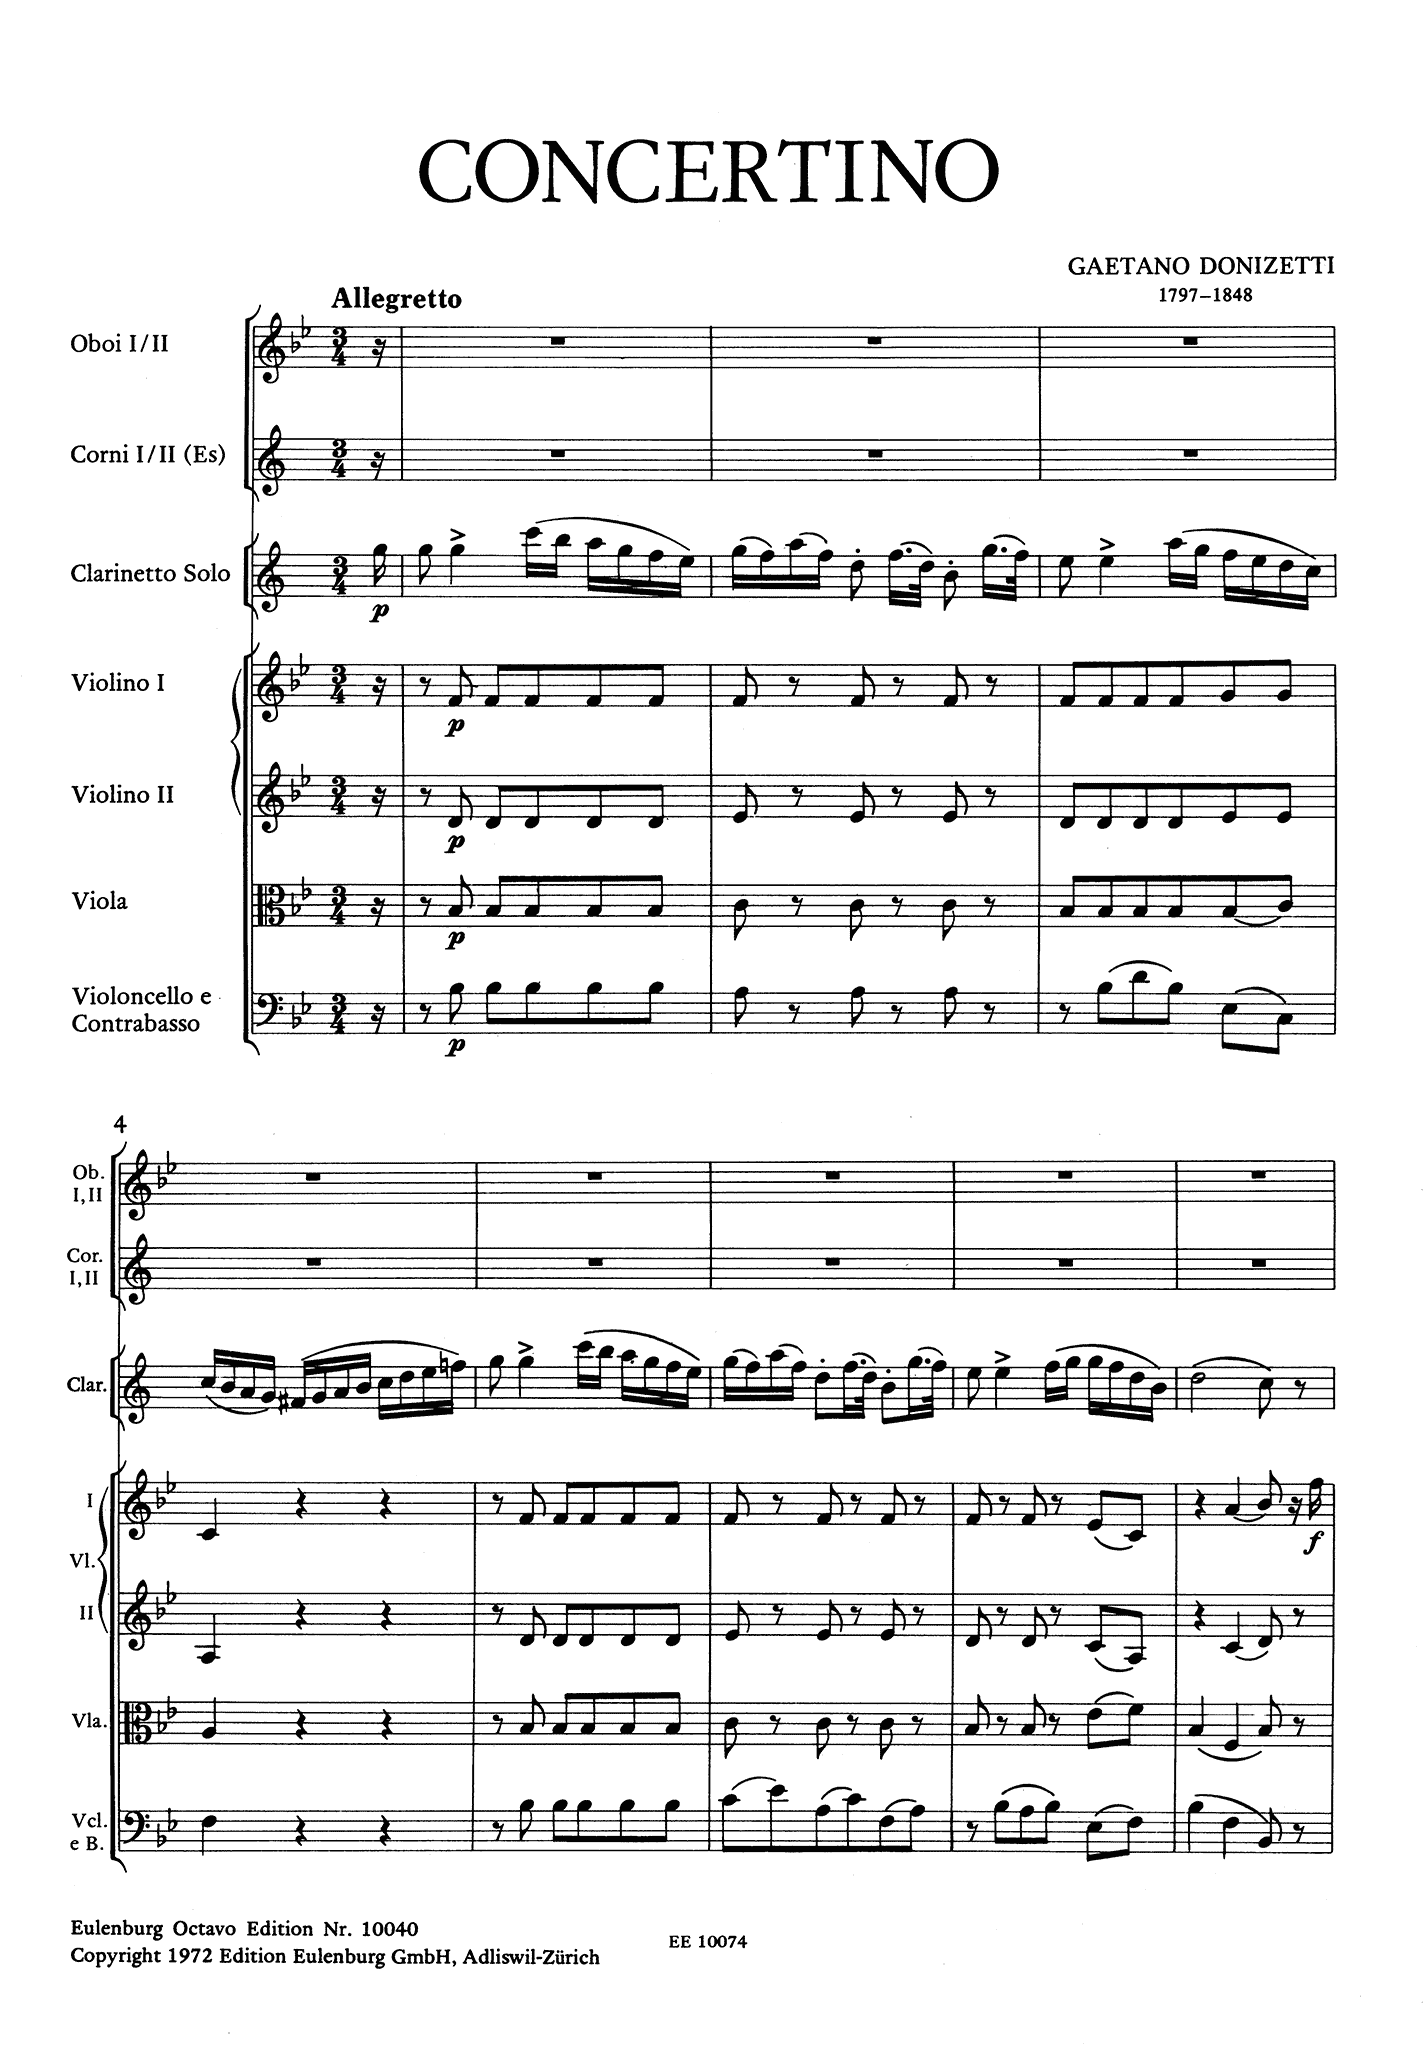 Donizetti Concertino in B-flat Major Full Score